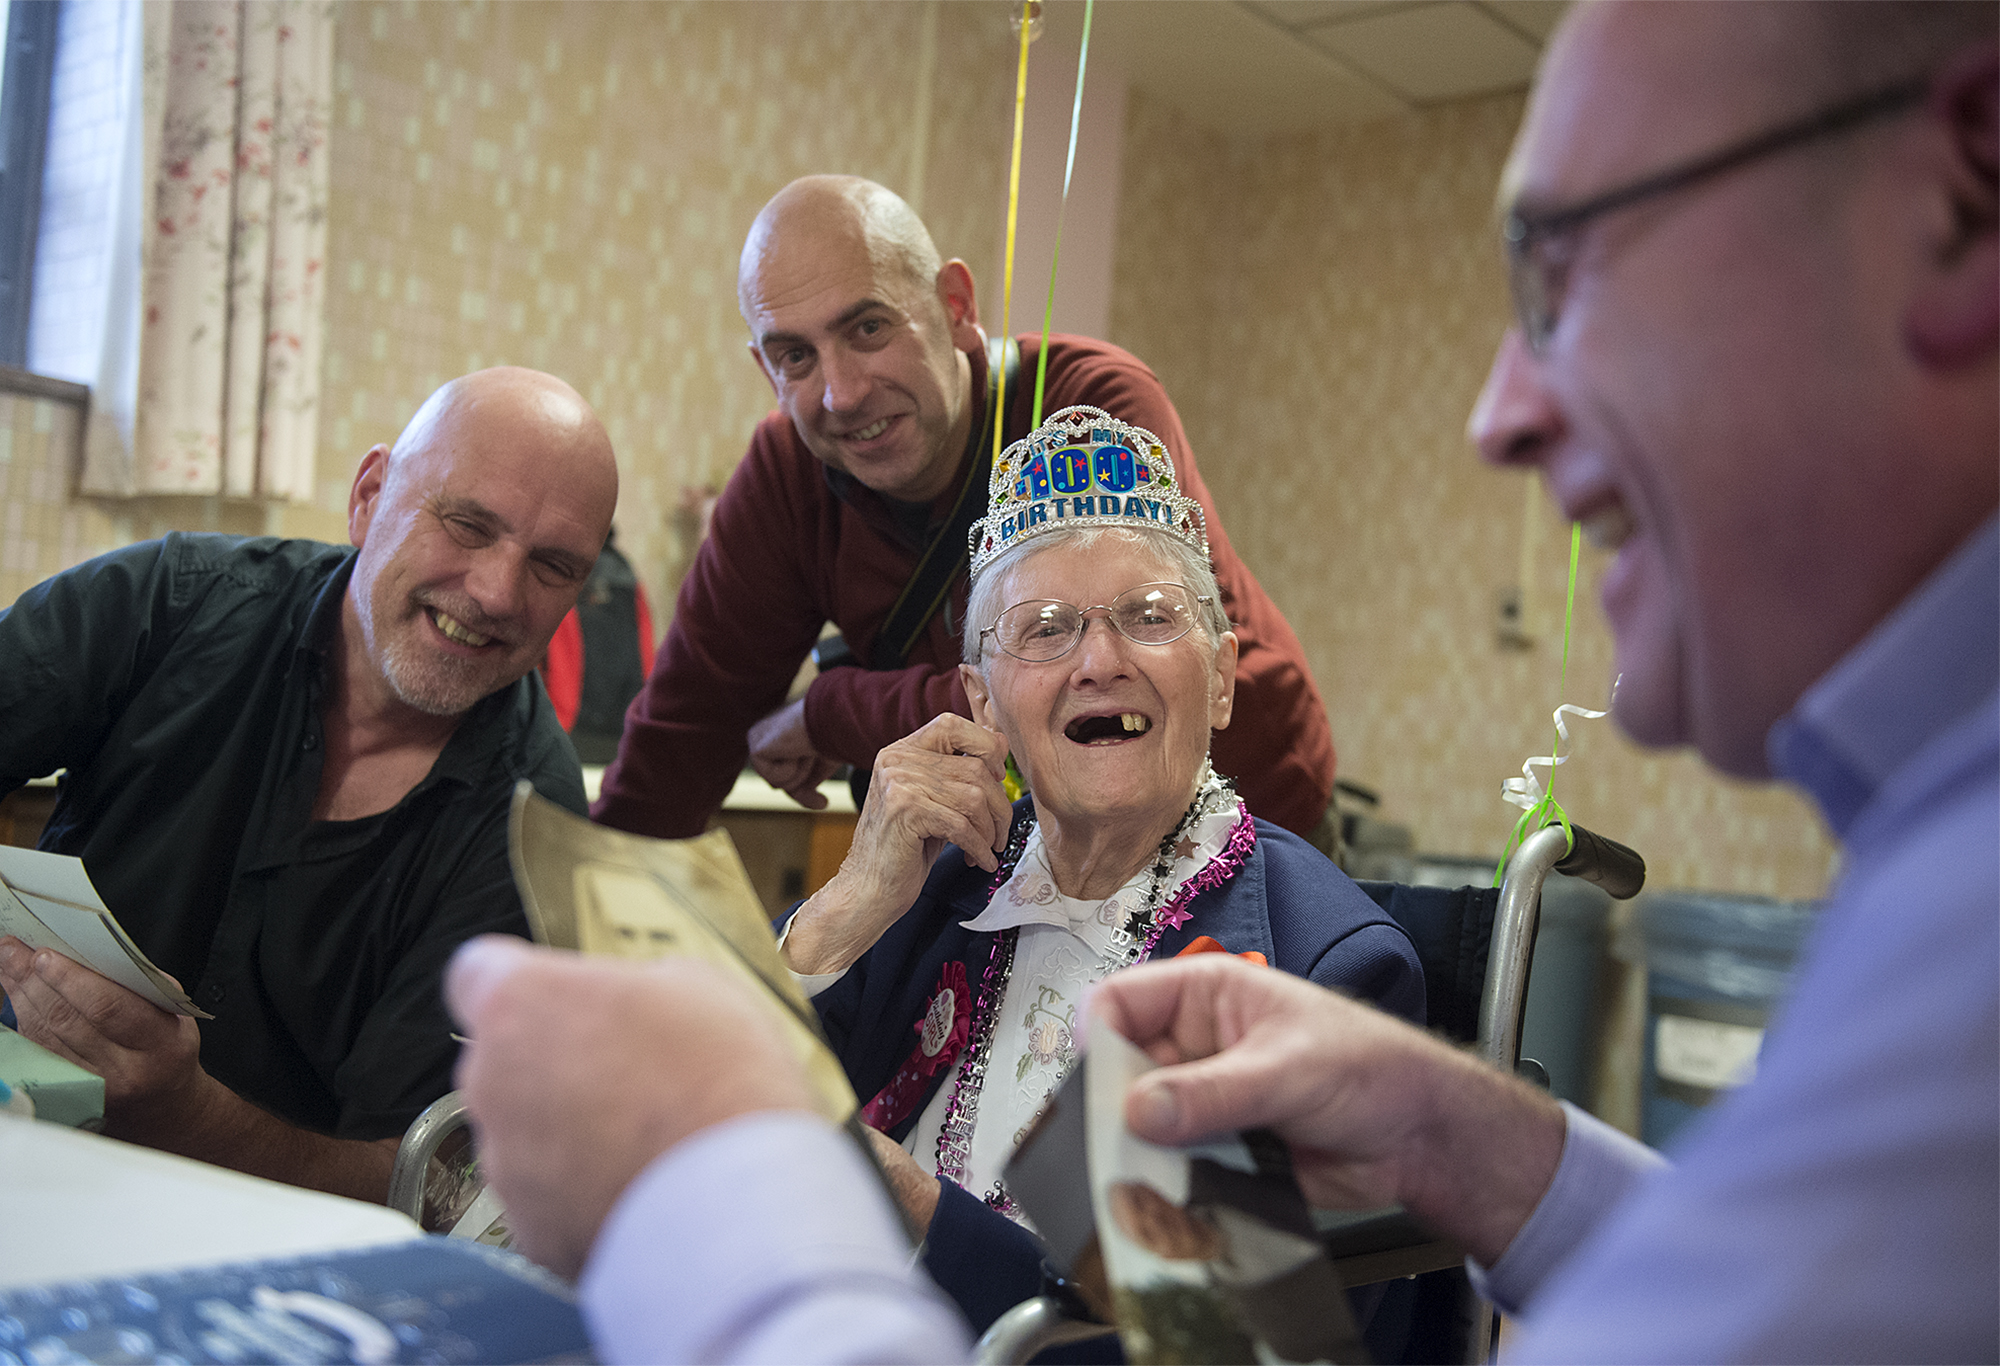 Sister Maureen Patricia Ryan laughs at an old photo of herself while surrounded by her nephews from Ireland (from left) Noel Roberts, Kevin Roberts and Ted Roberts, all sons of Ryan's sister, during a centenarian birthday celebration for her at the Motherhouse of Sisters of the Blessed Sacrament in Bensalem on Thursday, January 12, 2017.